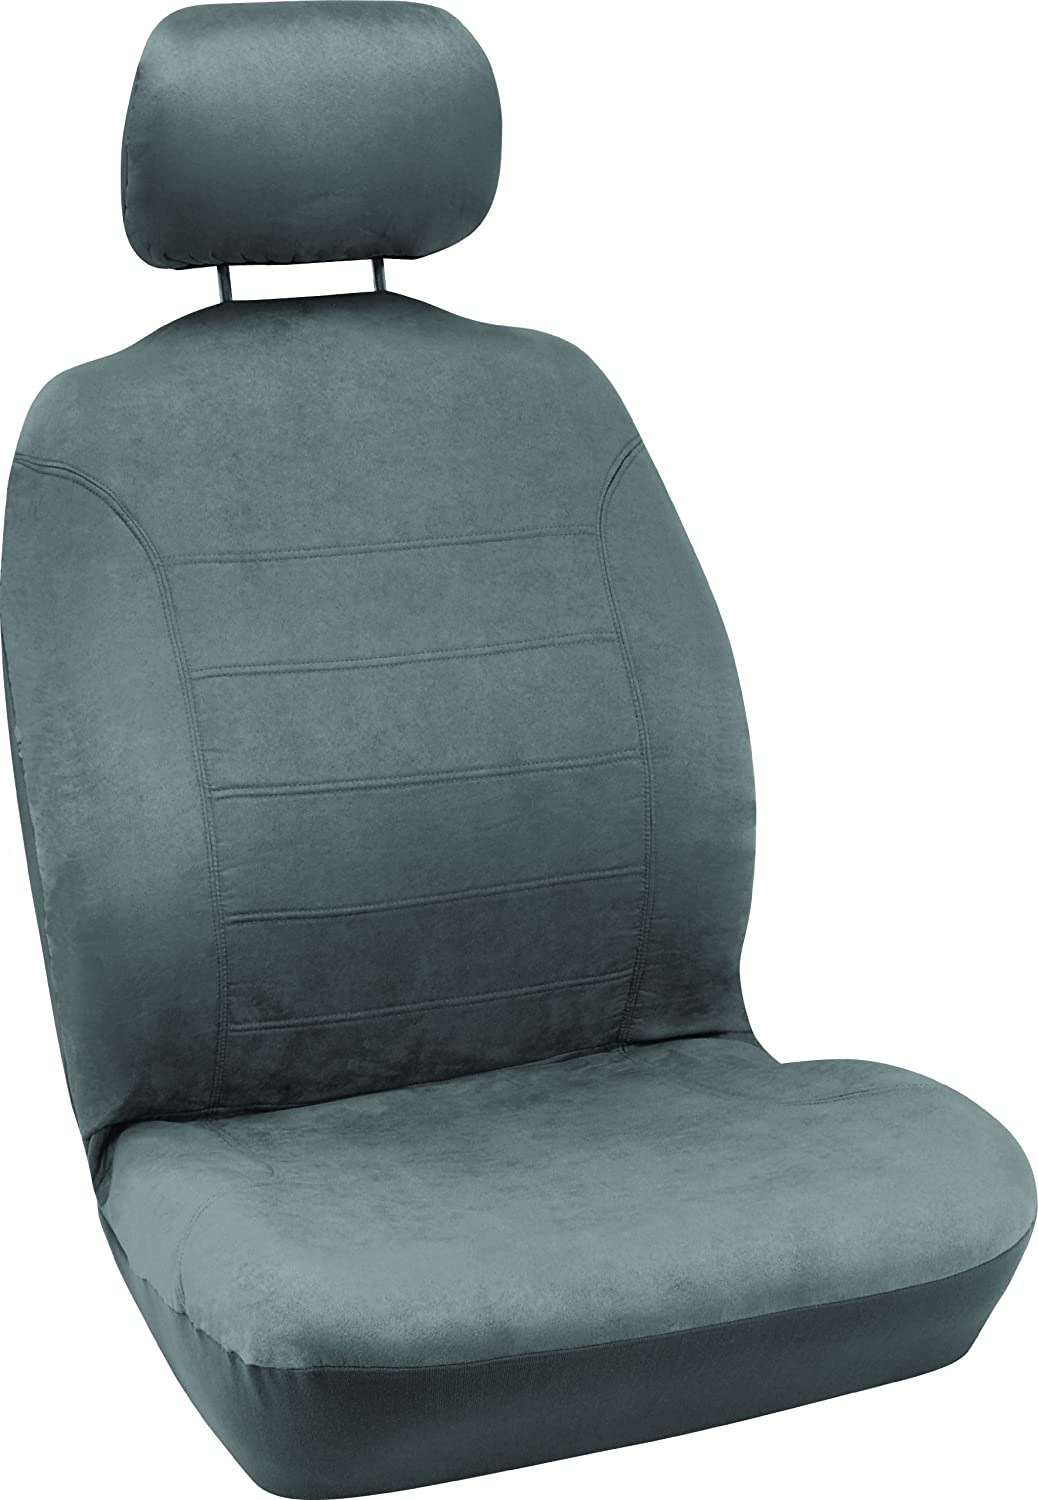 Bell Automotive 22-1-56229-8 Gray Micro Suede Low-Back Bucket Seat Cover